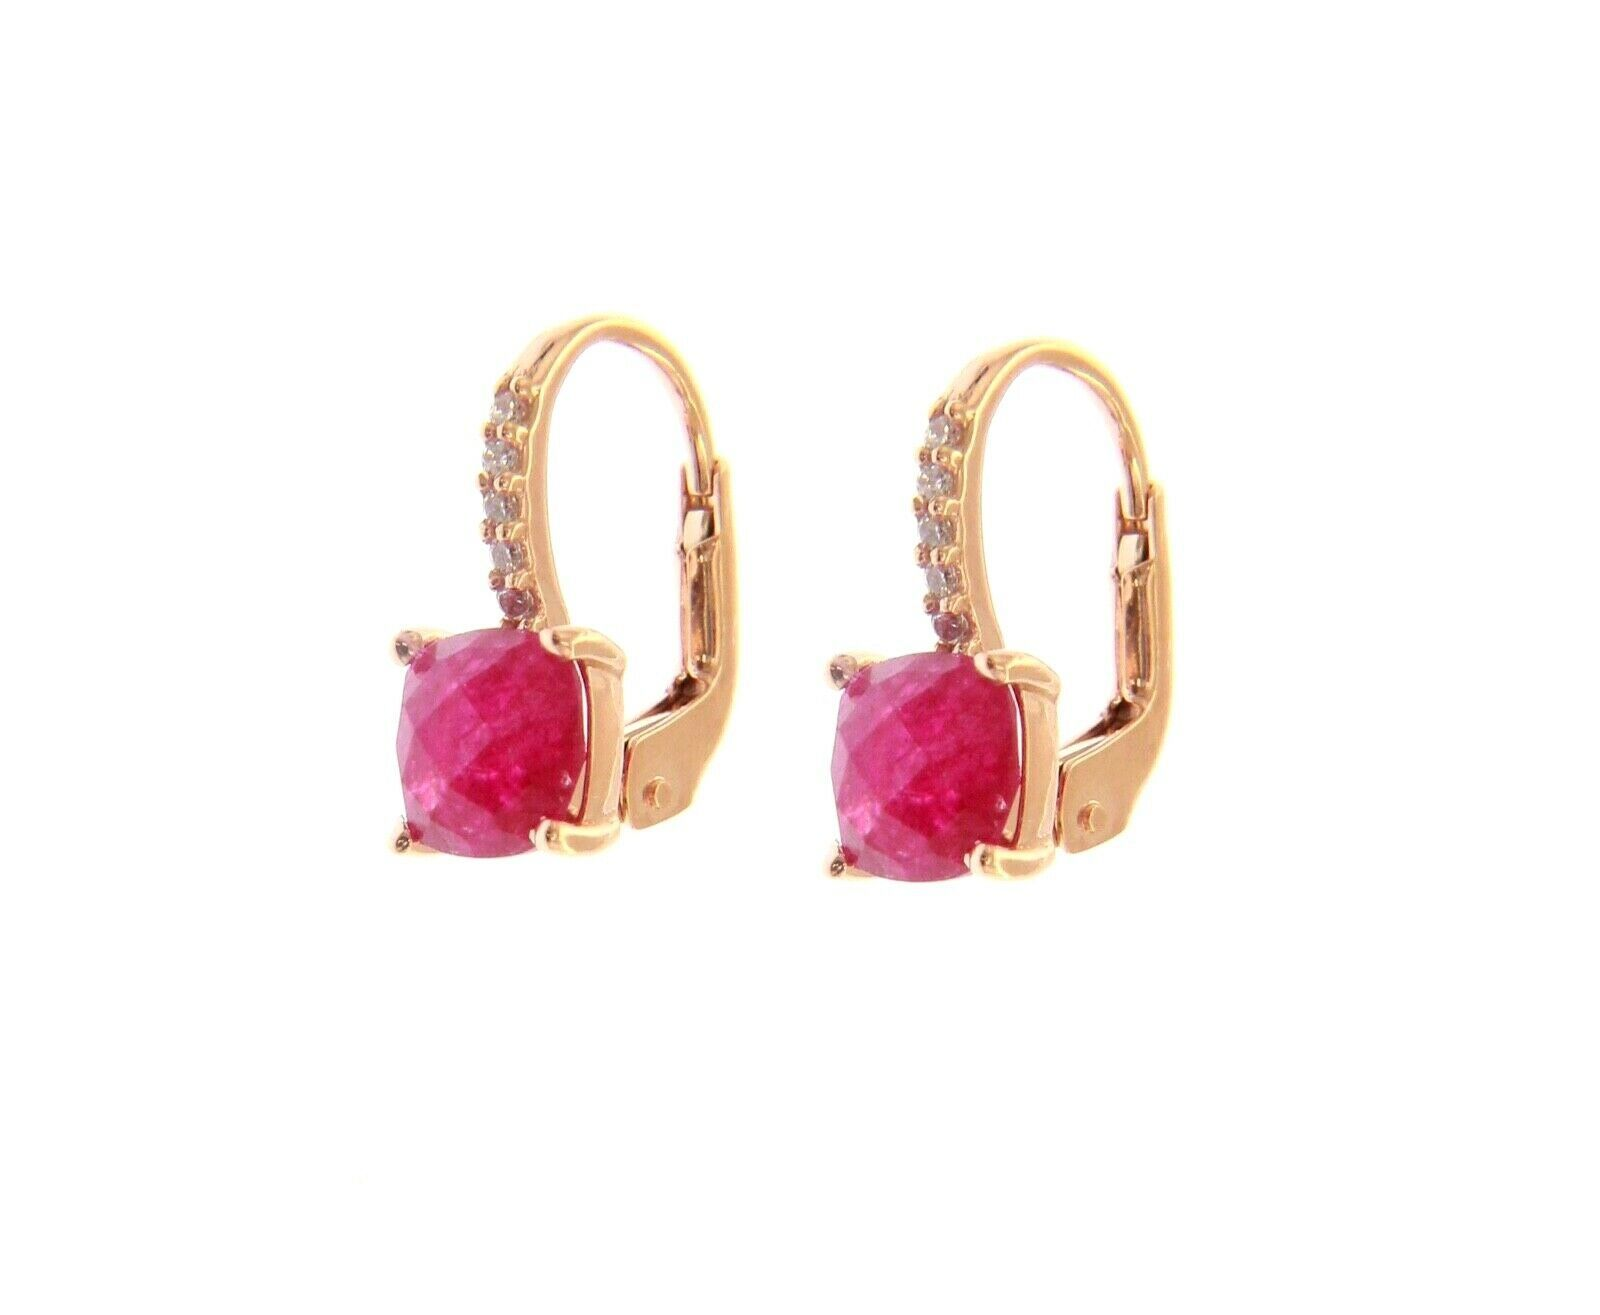 18K ROSE GOLD PENDANT EARRINGS WITH CUBIC ZIRCONIA & RED RUBY CUSHION CUT